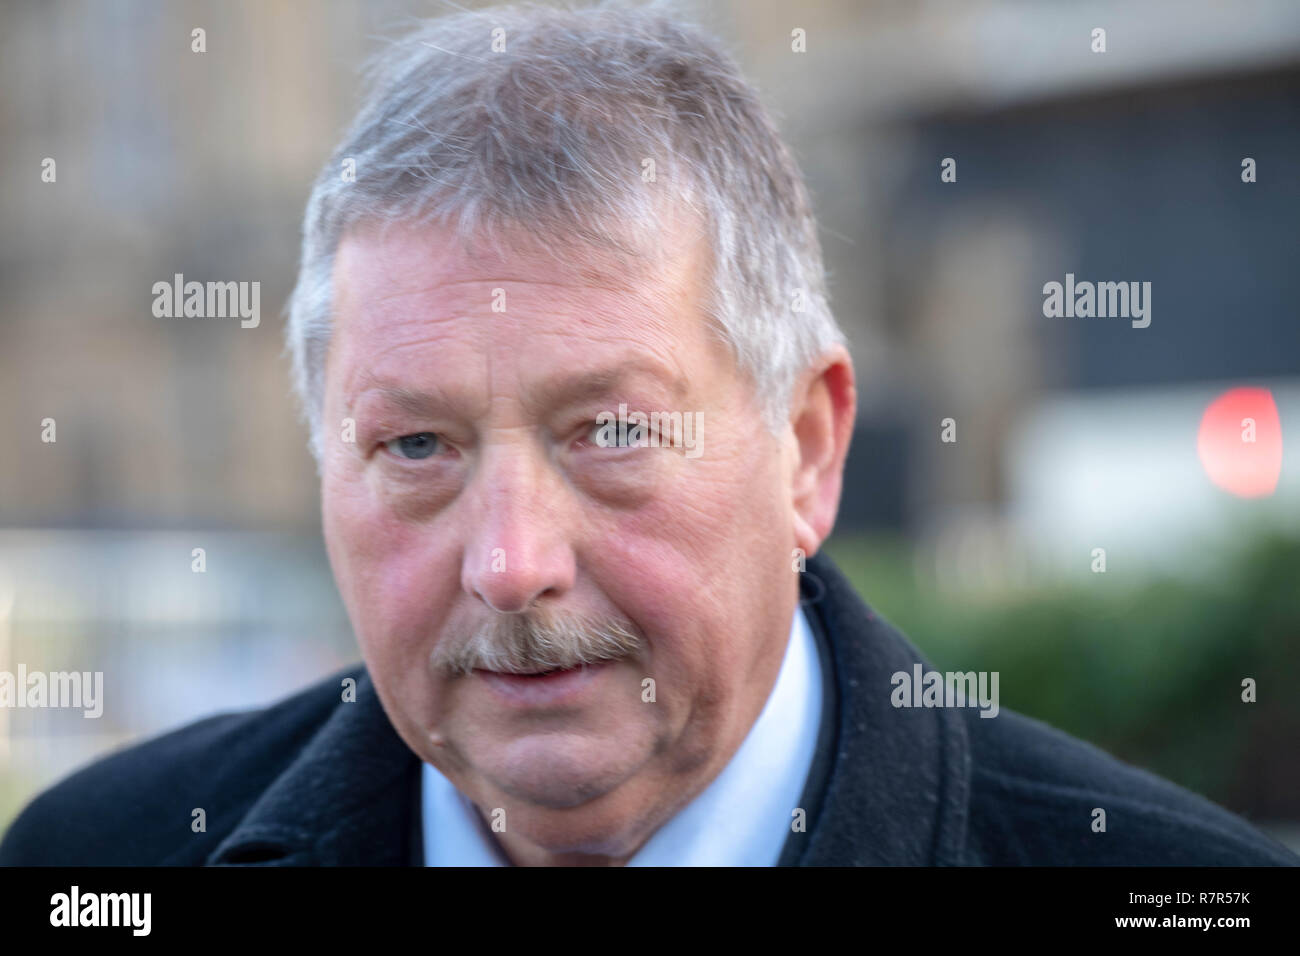 London, UK. 11th December 2018 Brexit High drama at Westminster Samuel Wilson is a politician from Northern Ireland who is a Democratic Unionist Party Member of Parliament for East Antrim , he comments of Brexit,  Credit Ian Davidson/Alamy Live News - Stock Image